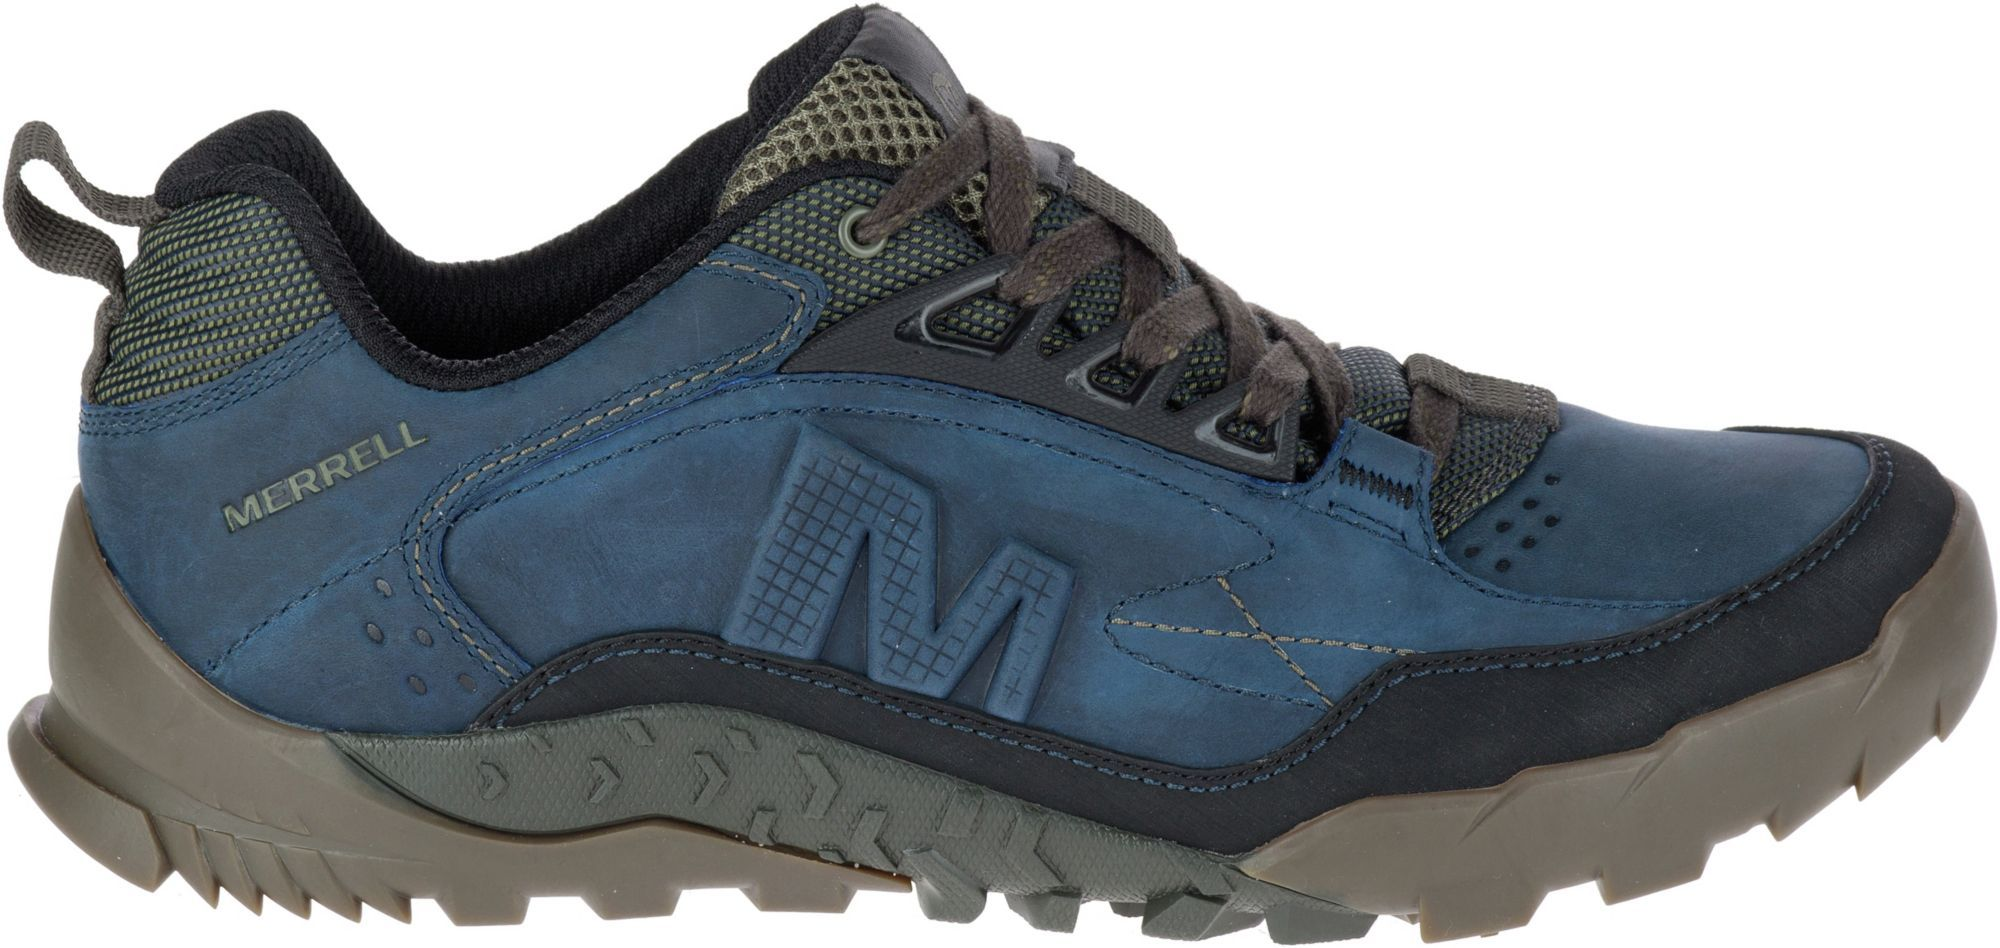 a423b3bebfb Merrell Men's Annex Trak Low Hiking Shoes   Products   Hiking shoes ...